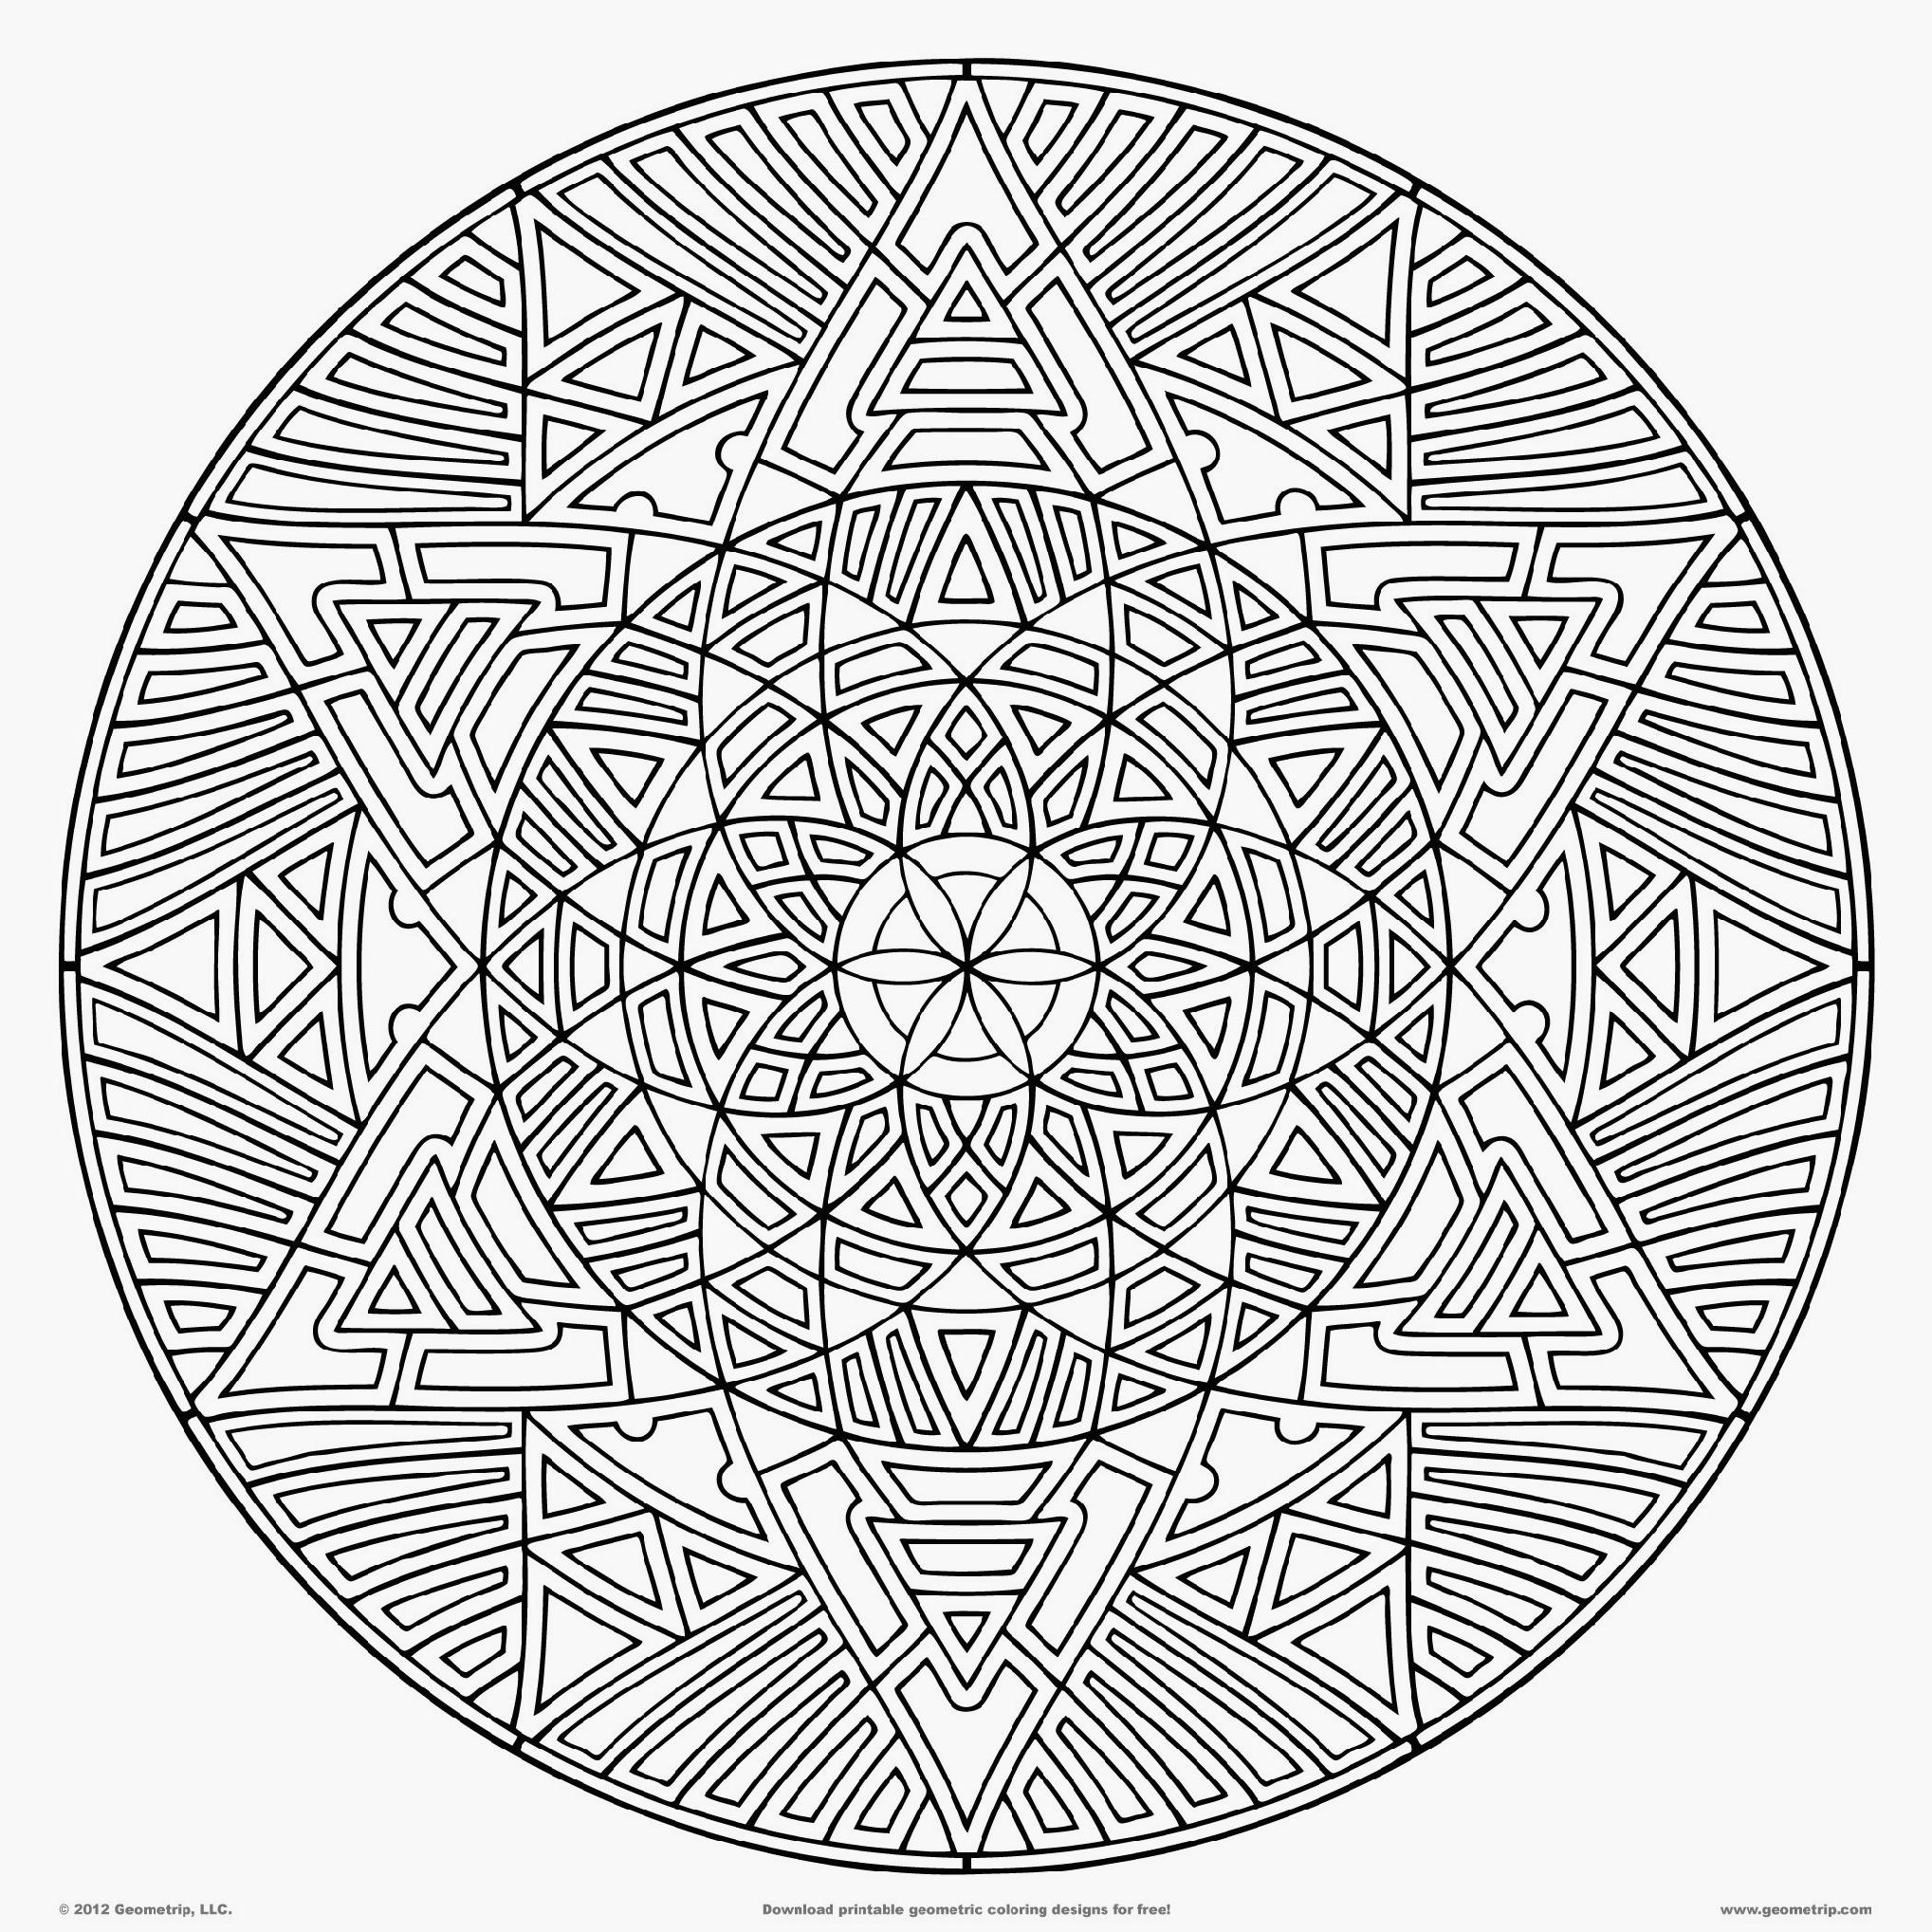 Abstract Circle Coloring Pages : Dessins de coloriage difficile à imprimer sur laguerche